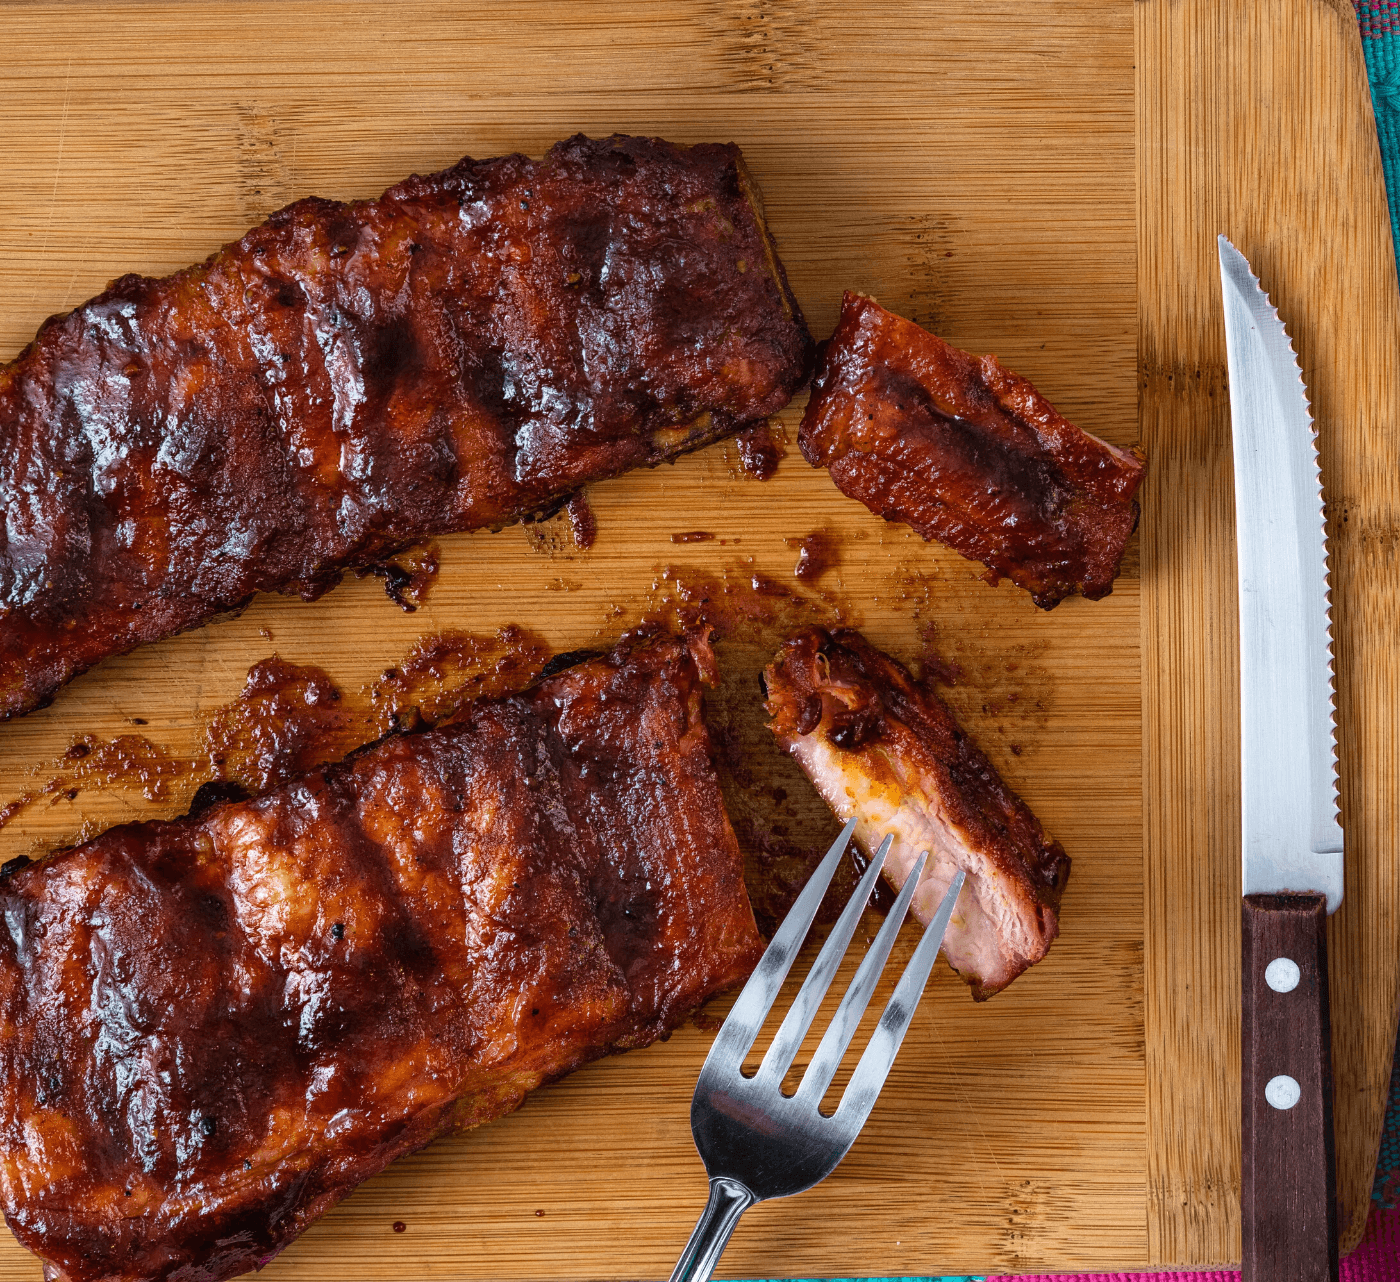 Candied pork ribs on a cutting board with knife and fork.